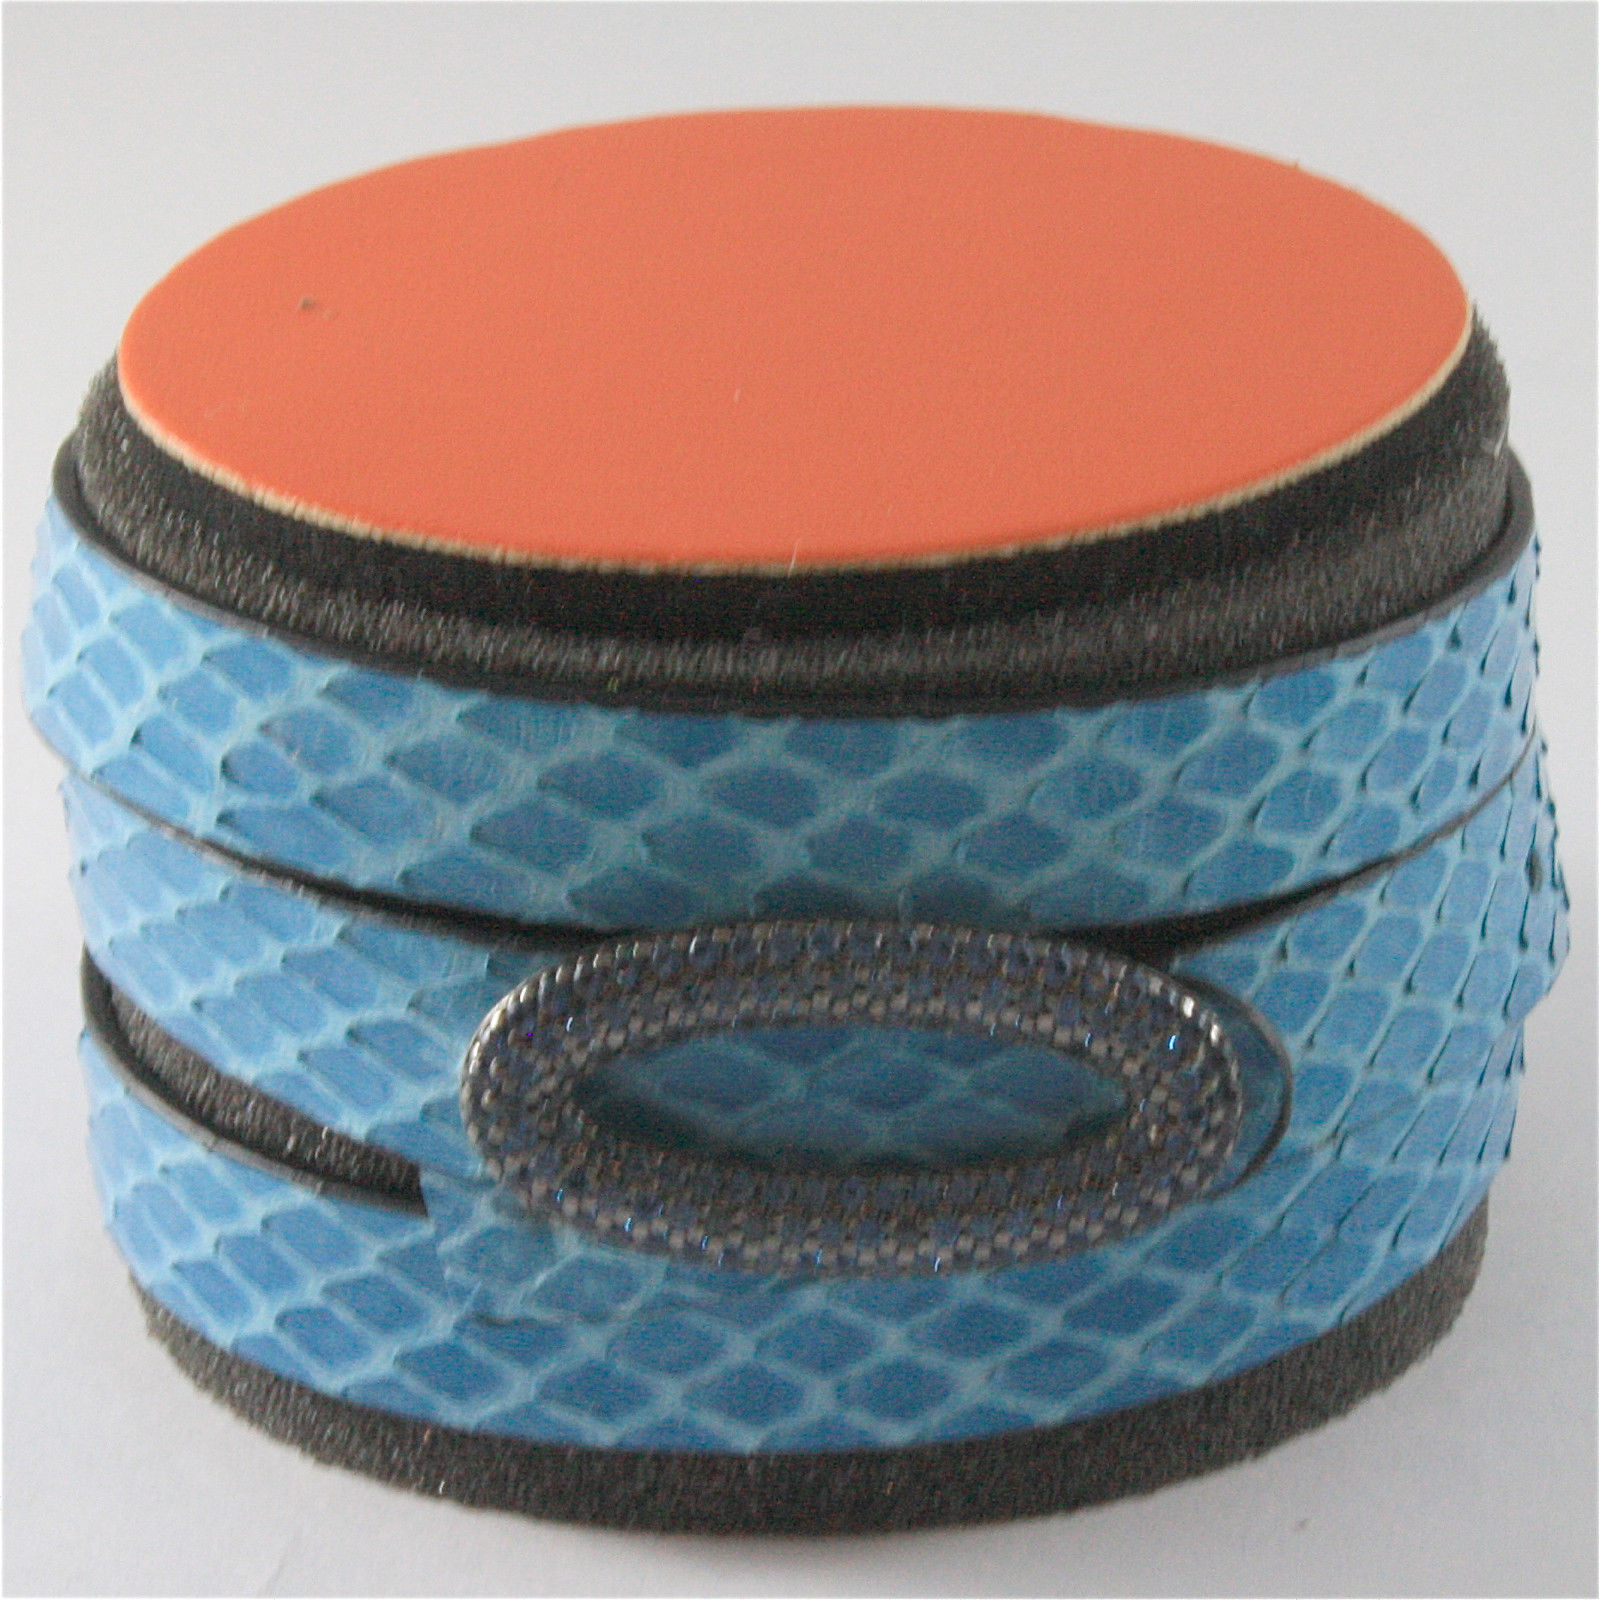 EDGY PYTHON BLUE LEATHER BRACELET WITH 925 SILVER WITH CRISTAL PAVE' SKY BLUE